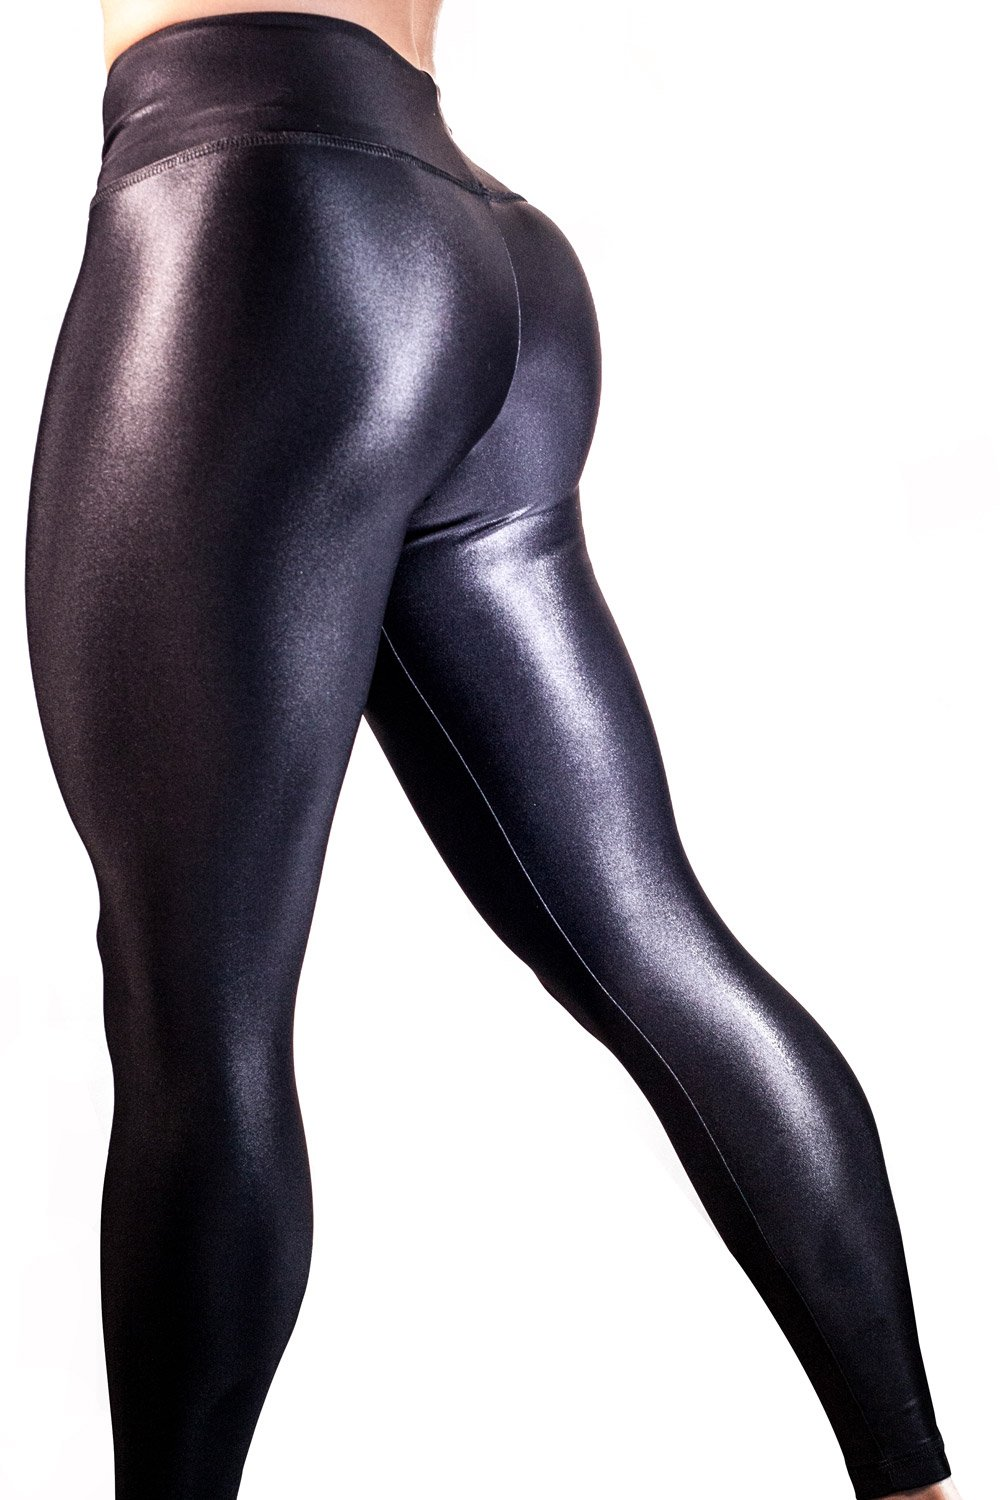 08e33a15818db BootyQueen Liquid Legging- Black Mesh Leggings, Pink Leggings, Women's  Leggings, Womens Wetsuit